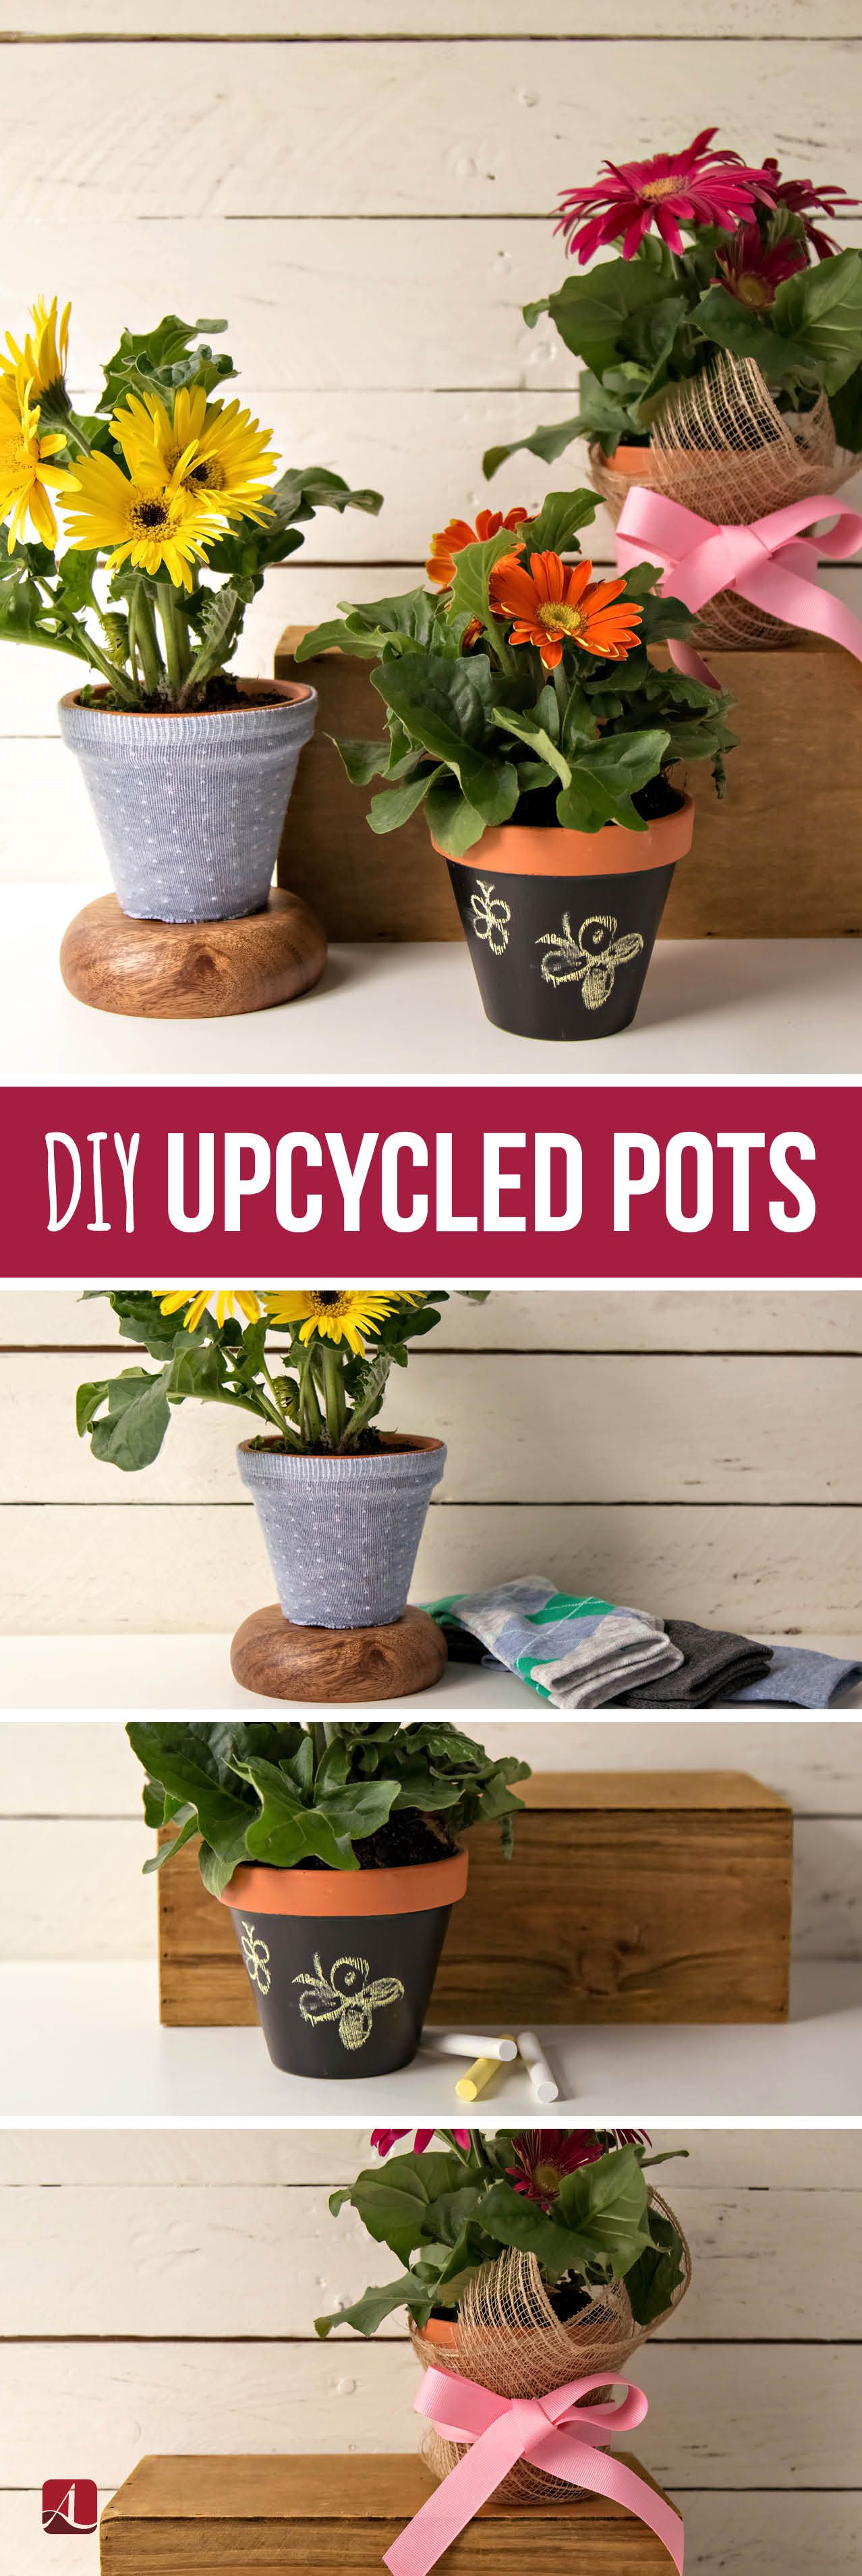 Let Love Bloom With 3 Potted Plant Crafts - Diy